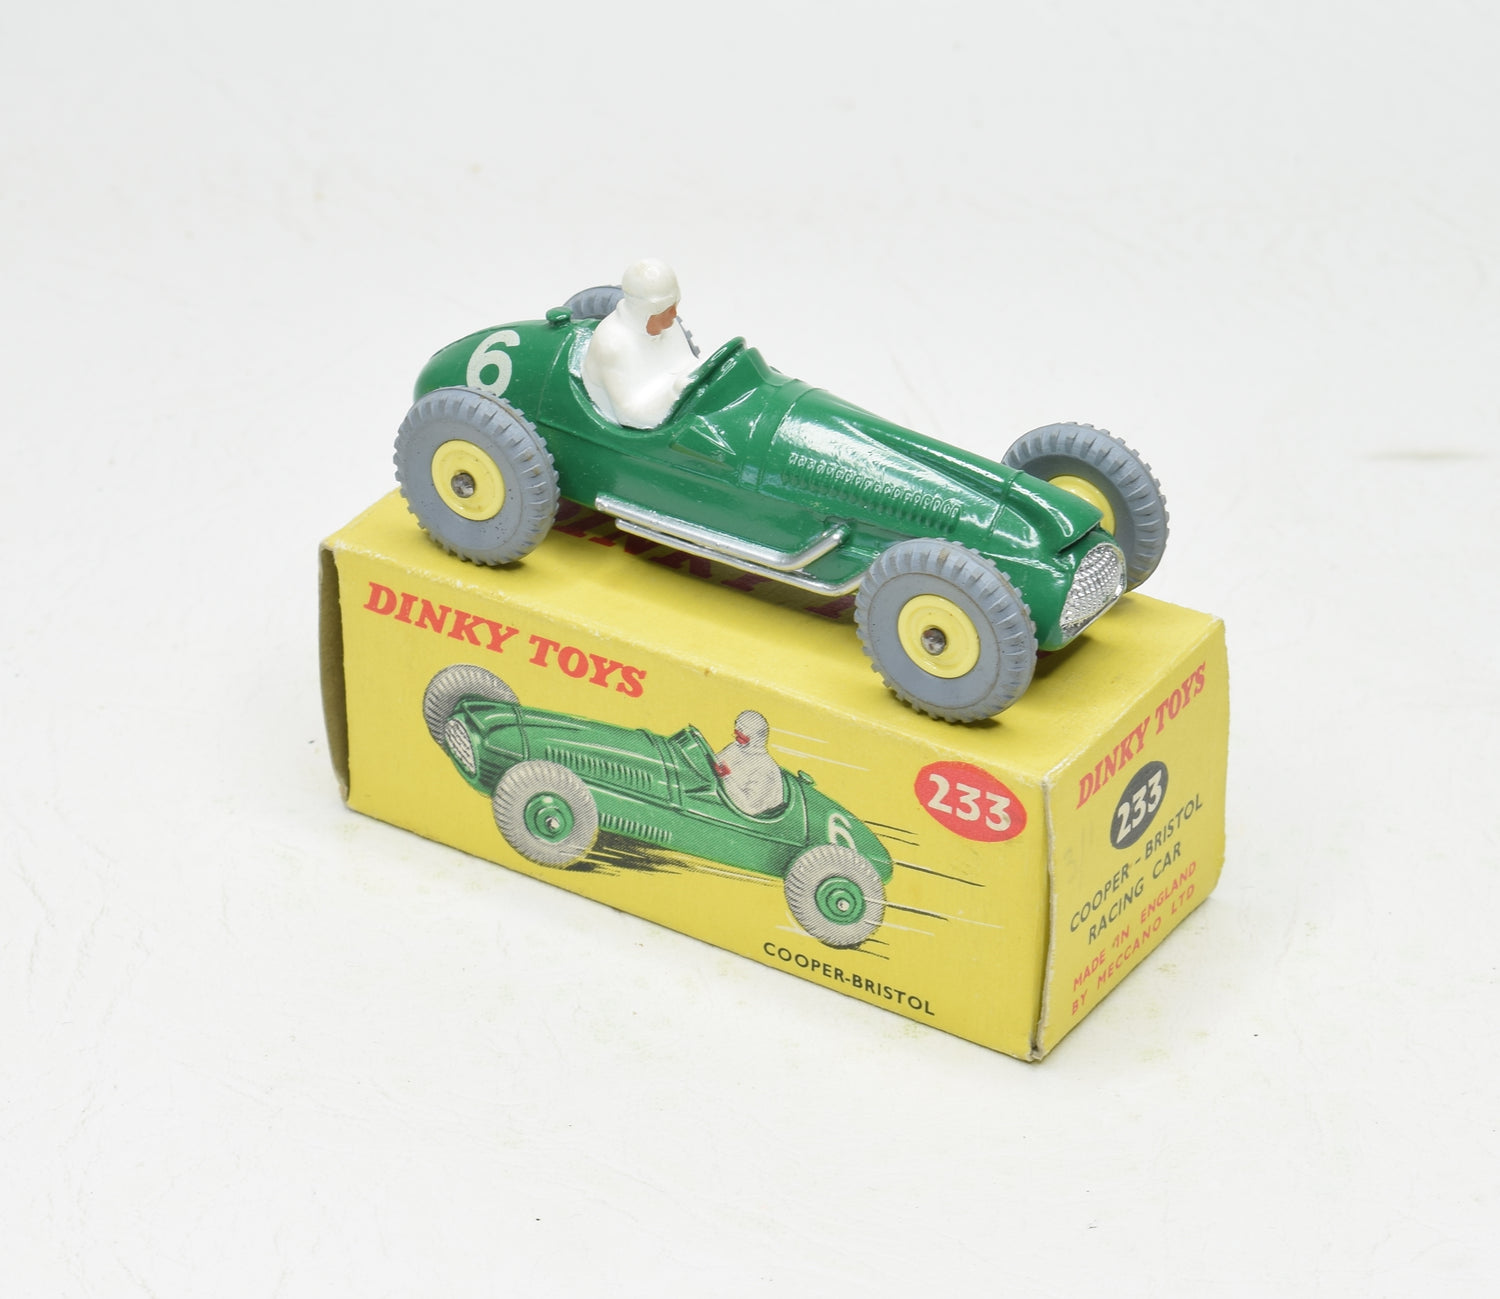 Dinky Toys 233 Cooper-Bristol Virtually Mint/Boxed (Incredibly rare hubs)